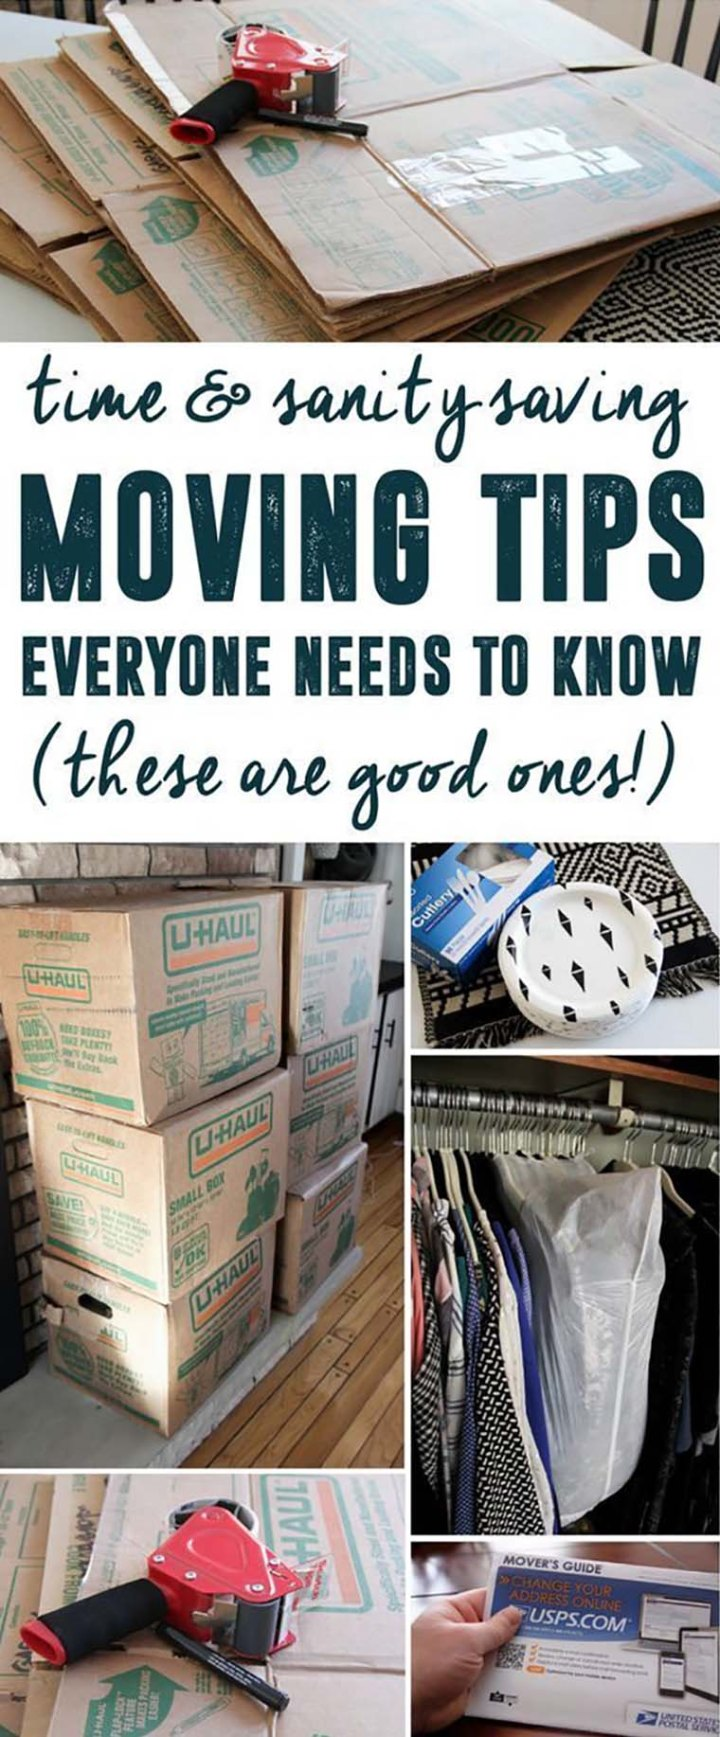 Guides and Advices for Moving